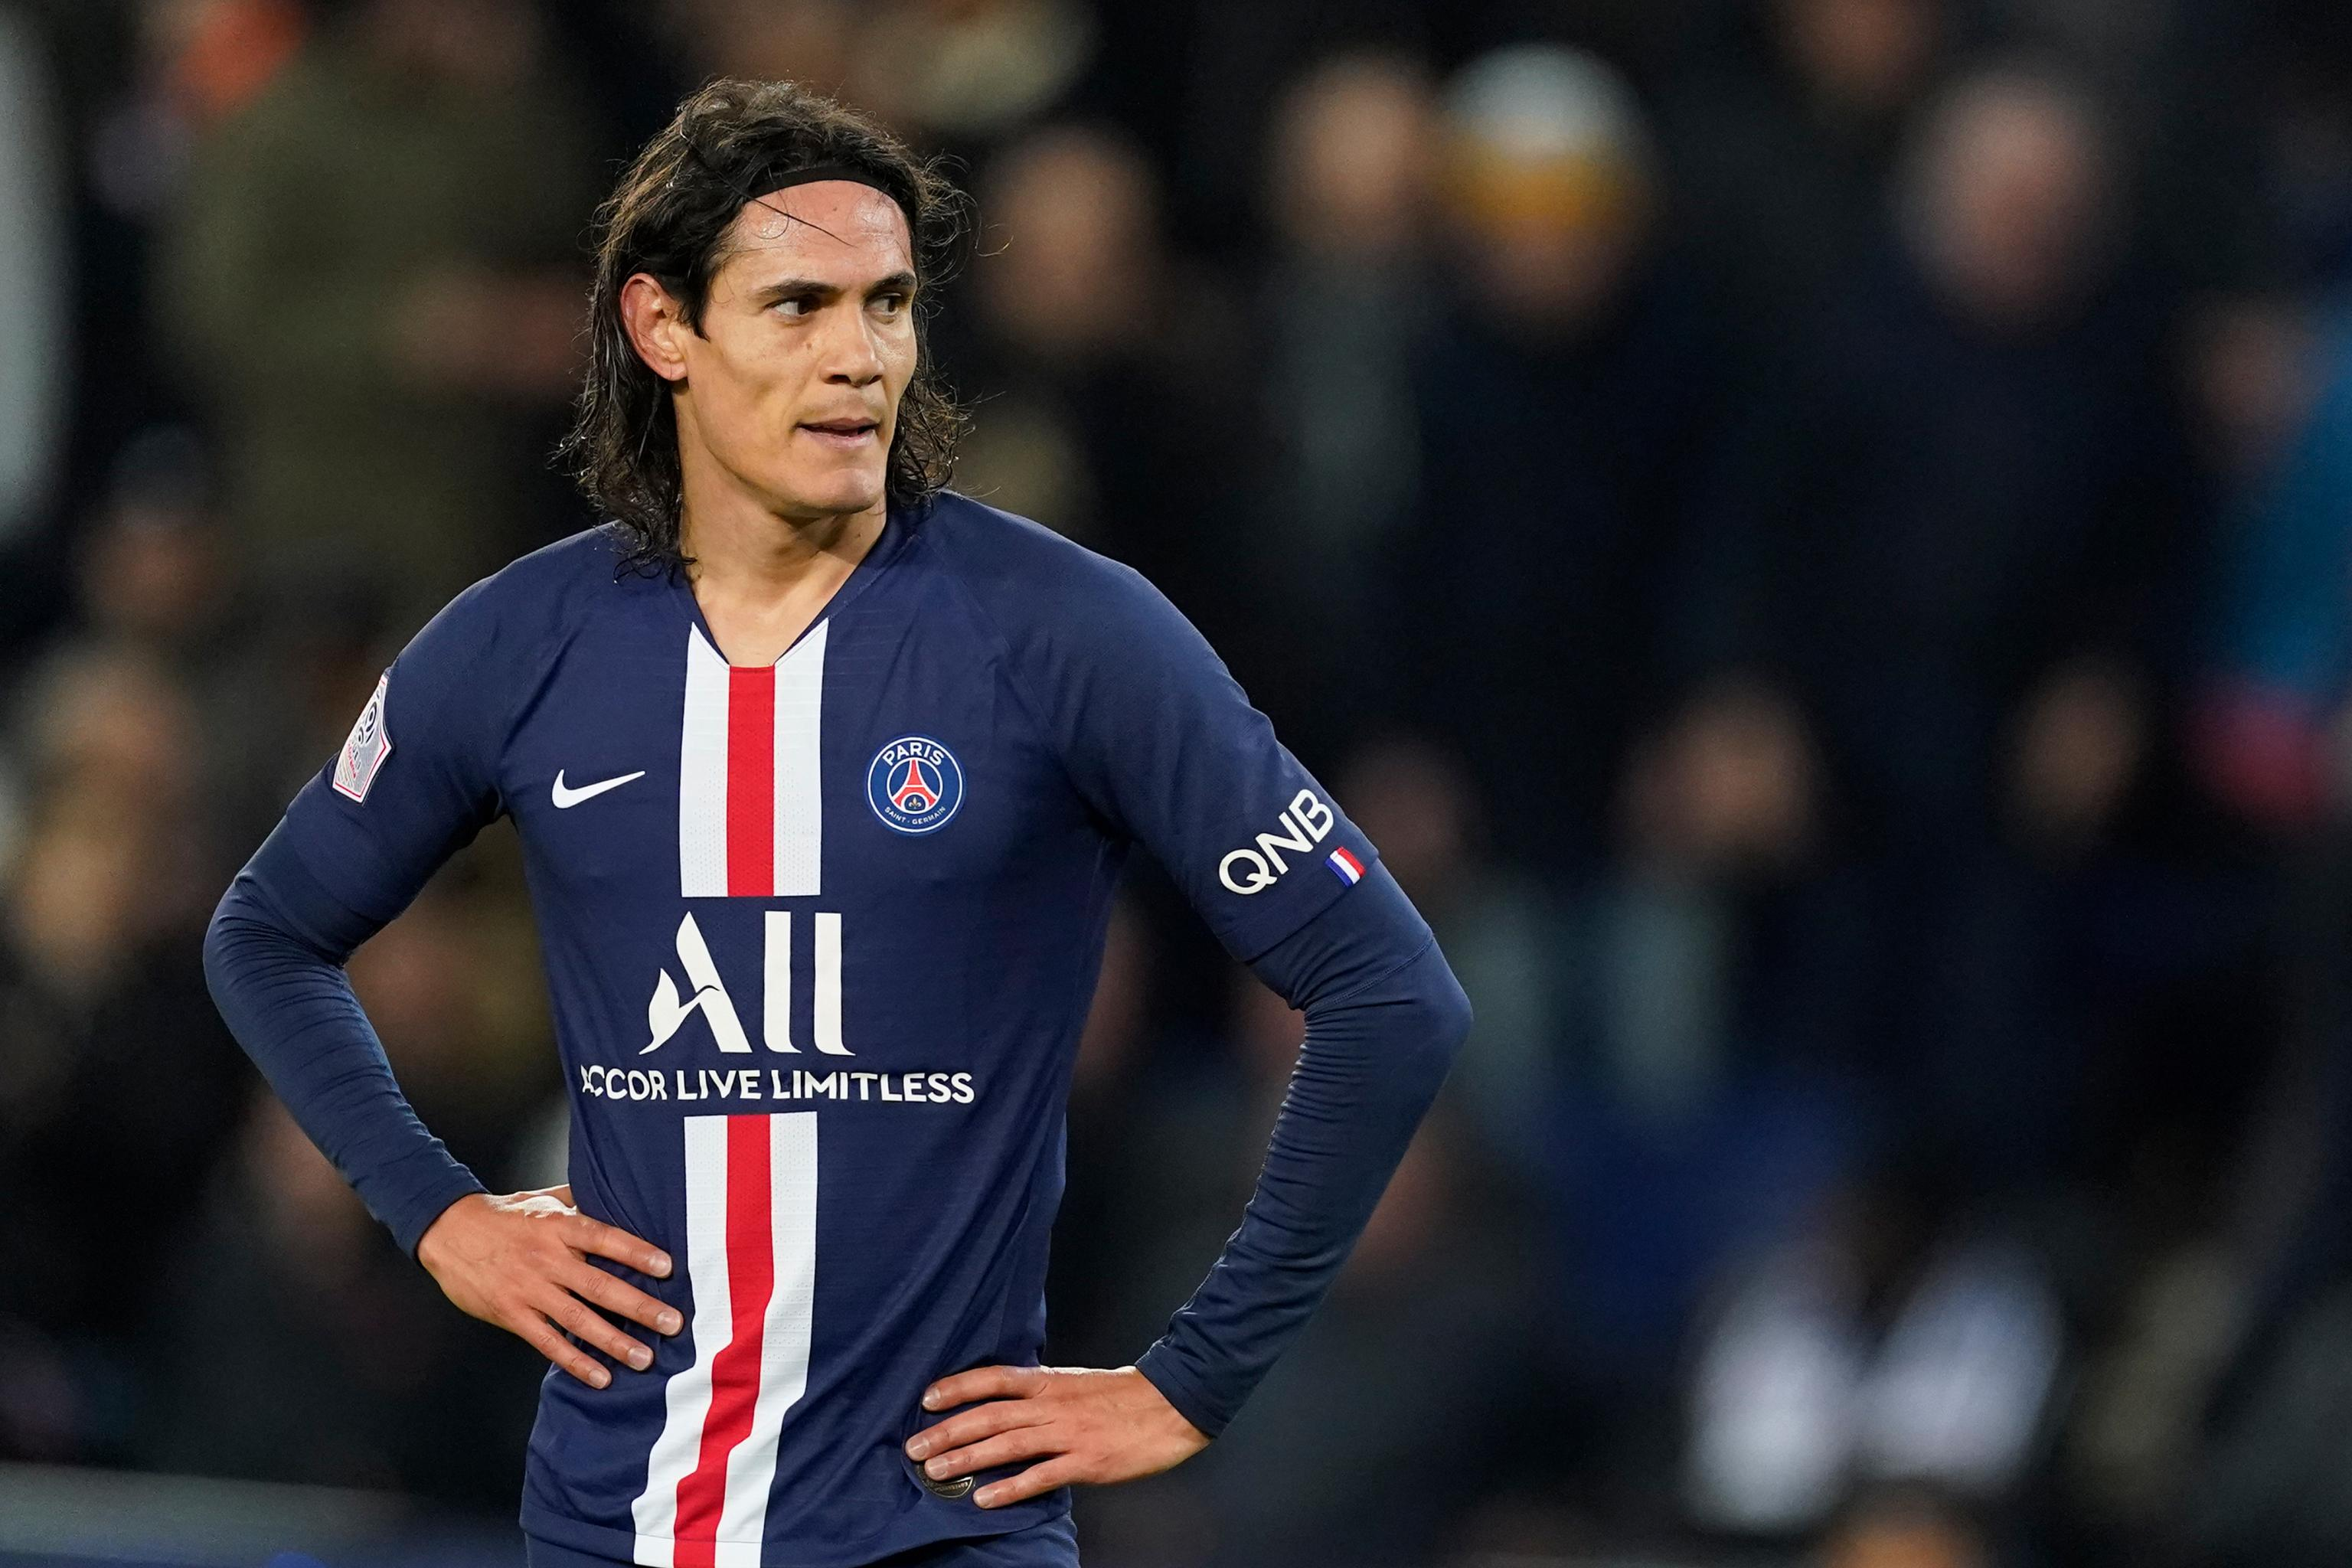 Latest On Psg S Edinson Cavani Amid Manchester United Chelsea Transfer Rumours Bleacher Report Latest News Videos And Highlights